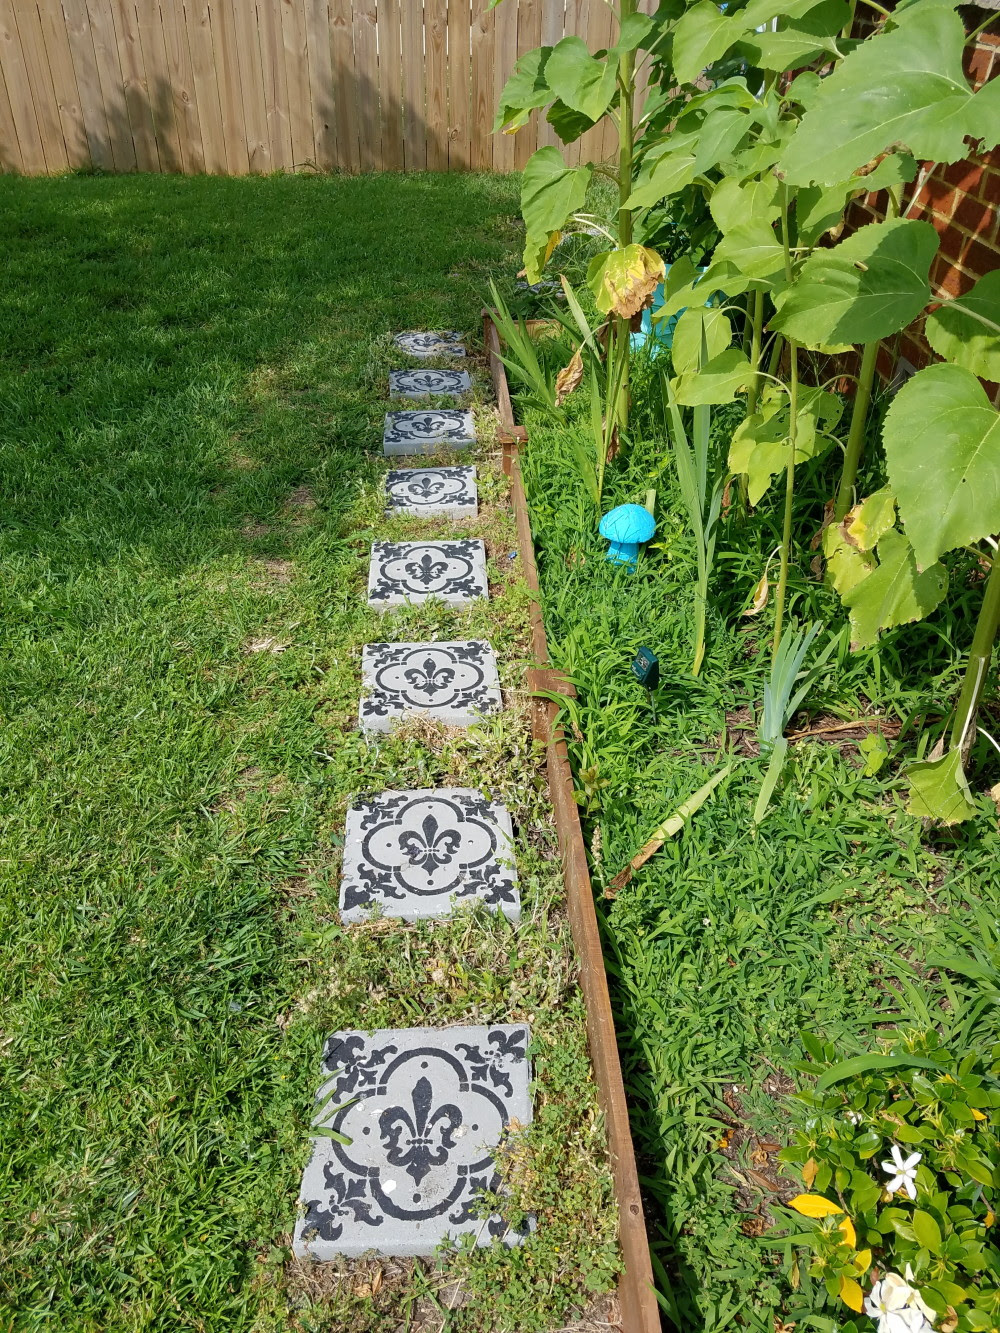 Yard stones painted to have a cement tile look. A boho garden in progress. @adesignerathome